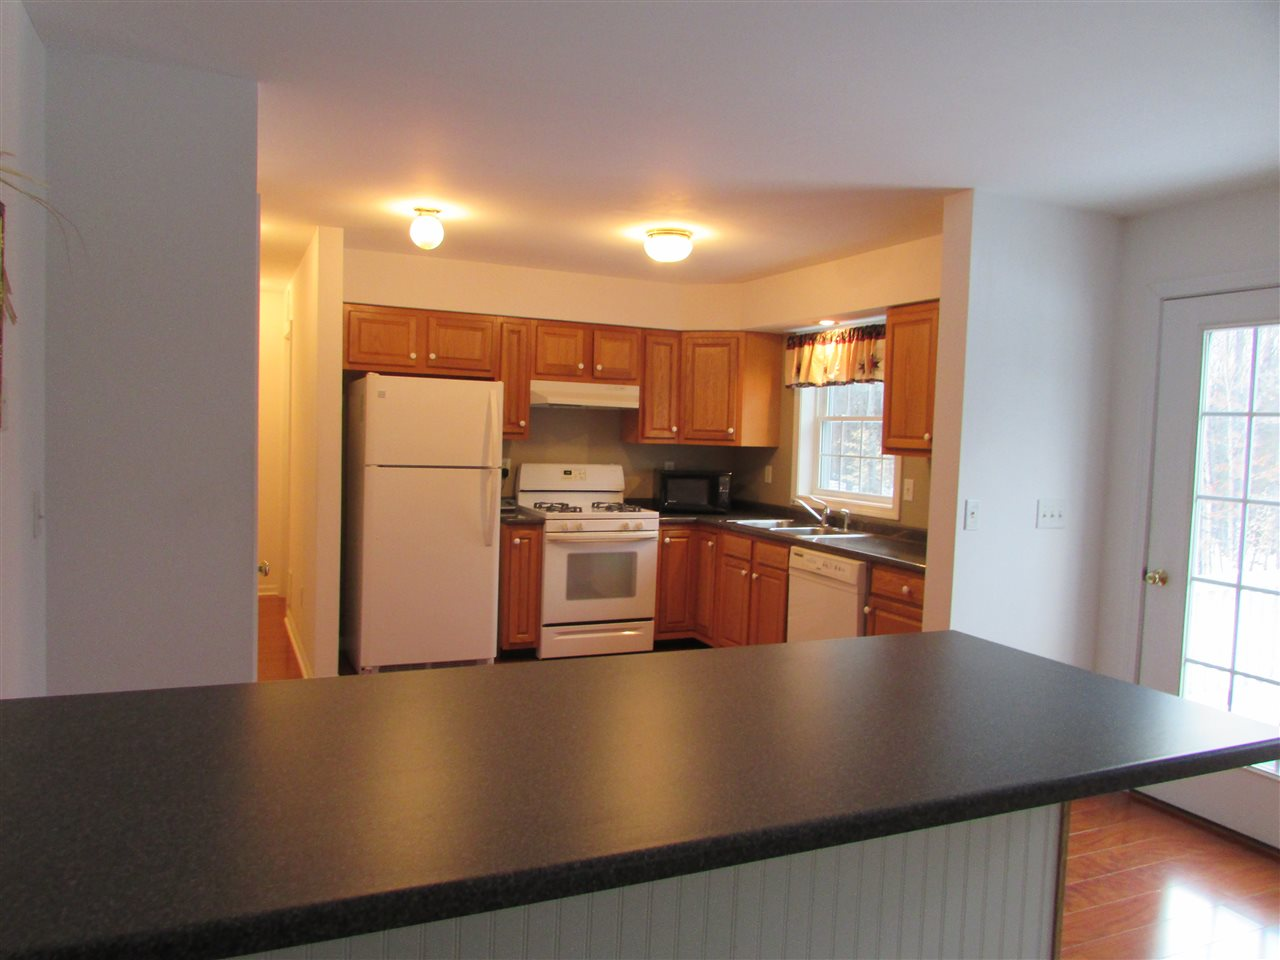 76 George Hill Road, Enfield, NH 03748